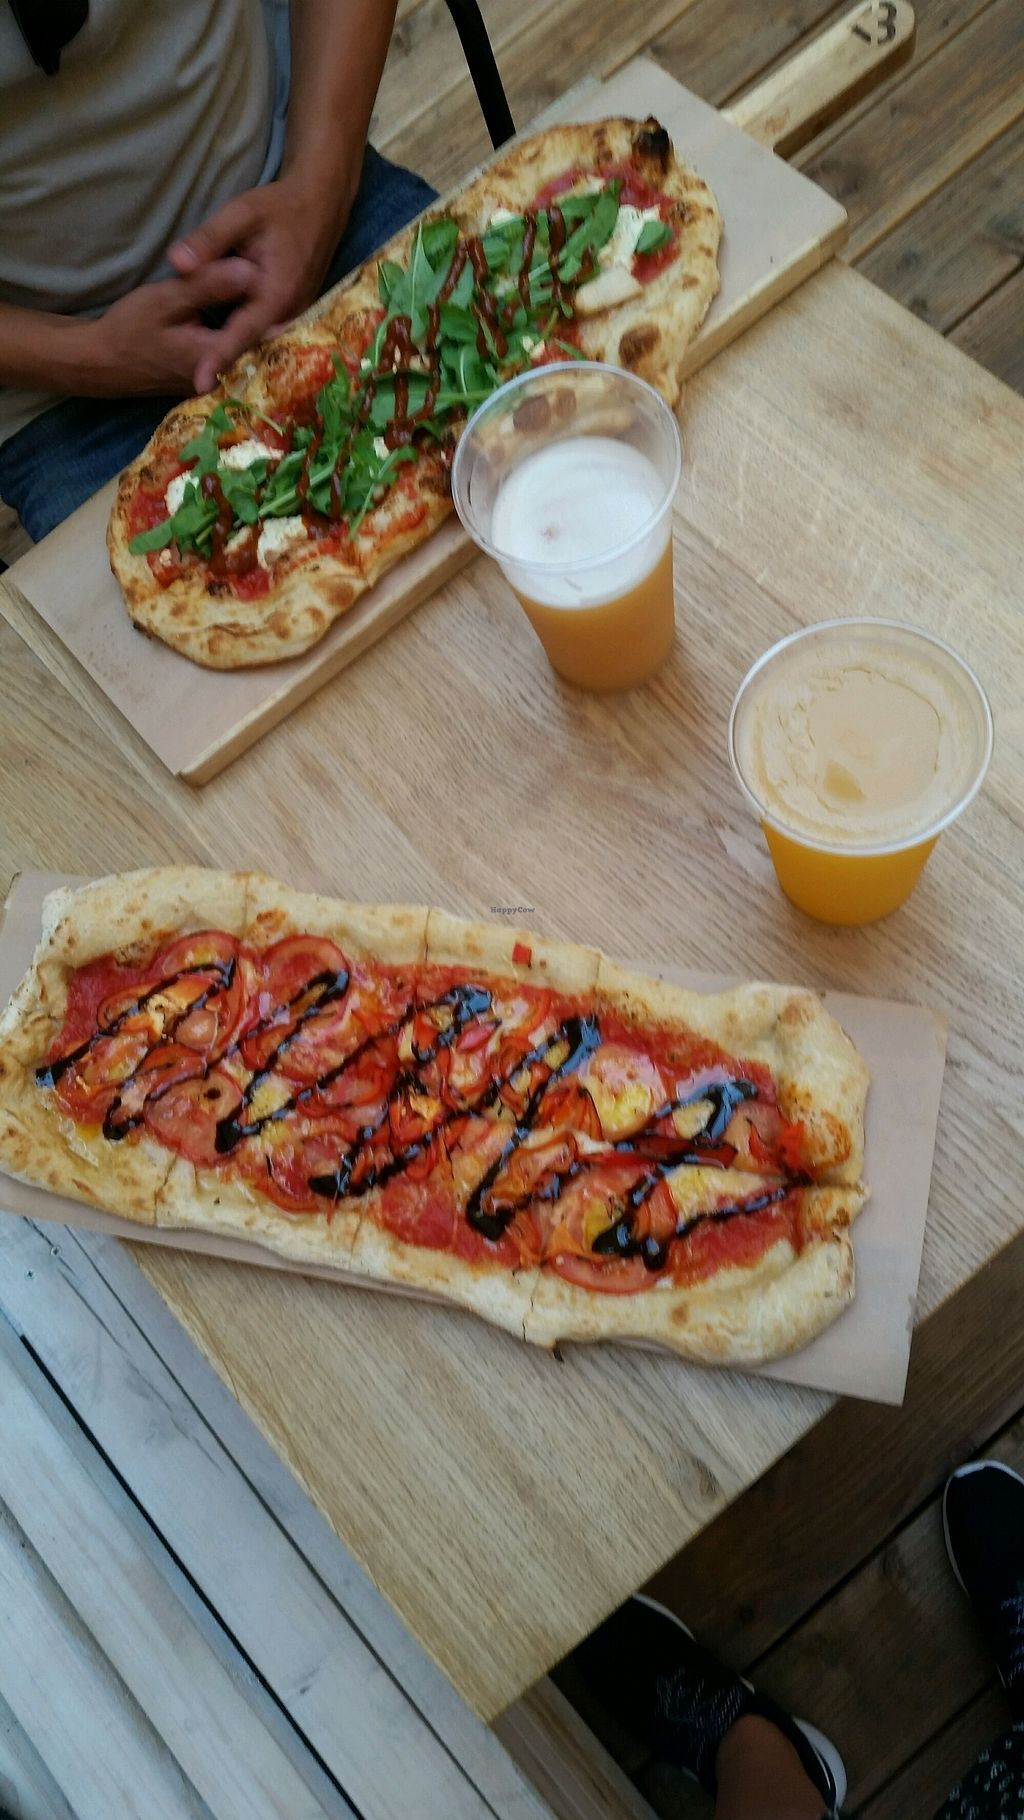 """Photo of Pizzatopia  by <a href=""""/members/profile/sharonalp25"""">sharonalp25</a> <br/>Pizzatopia Cracow: the one on the bottom is their vegan signature pizza I can recommend <br/> August 29, 2017  - <a href='/contact/abuse/image/97708/298710'>Report</a>"""